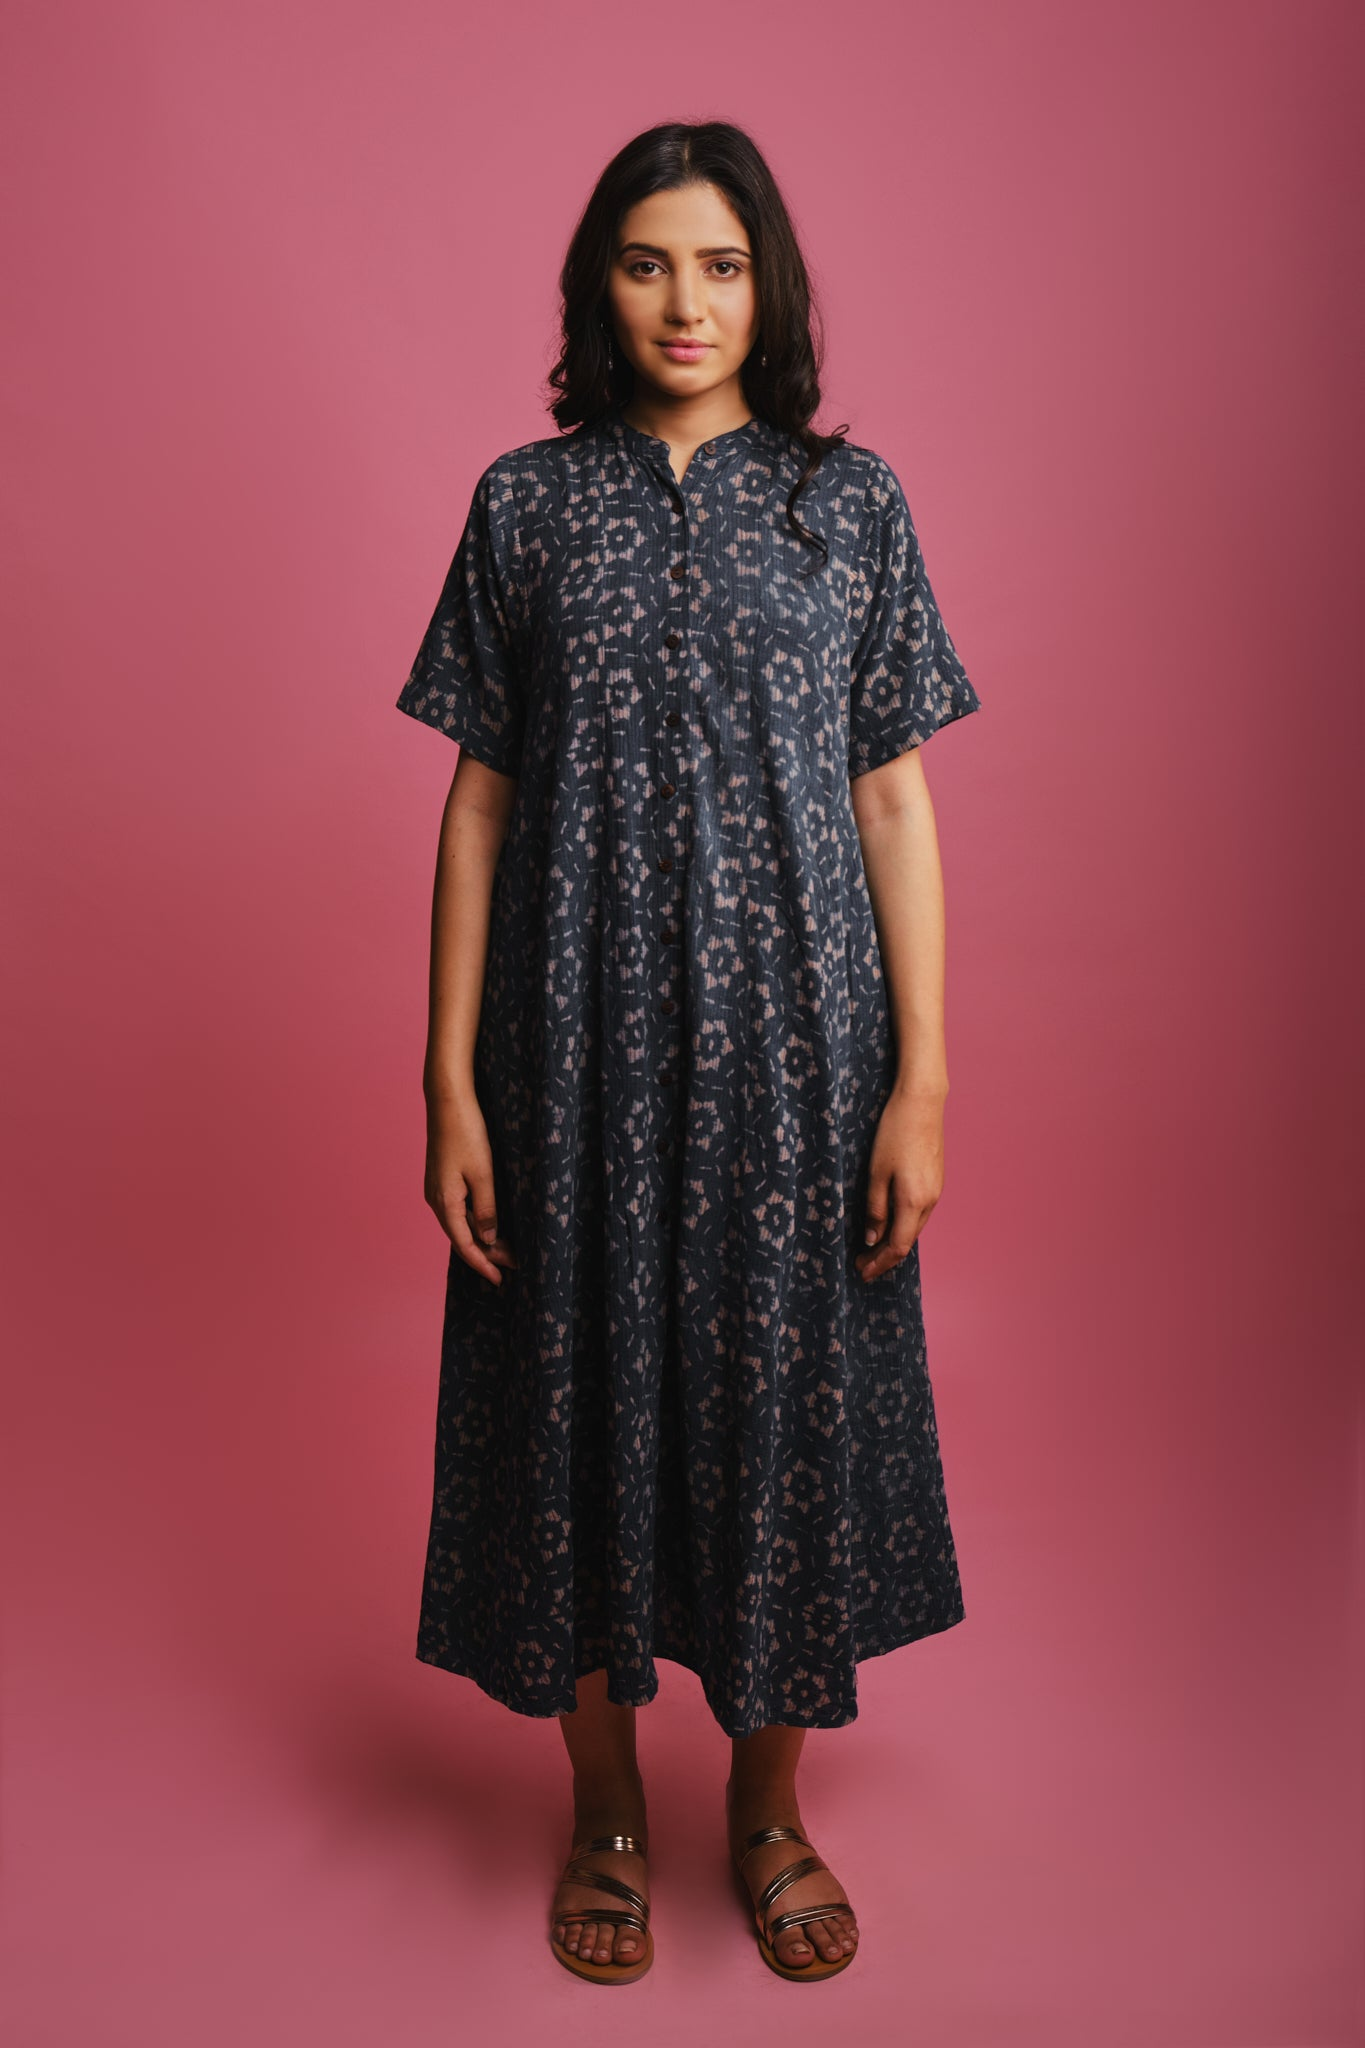 kala cotton organic handwoven button down blue indigo flared maxi long dress